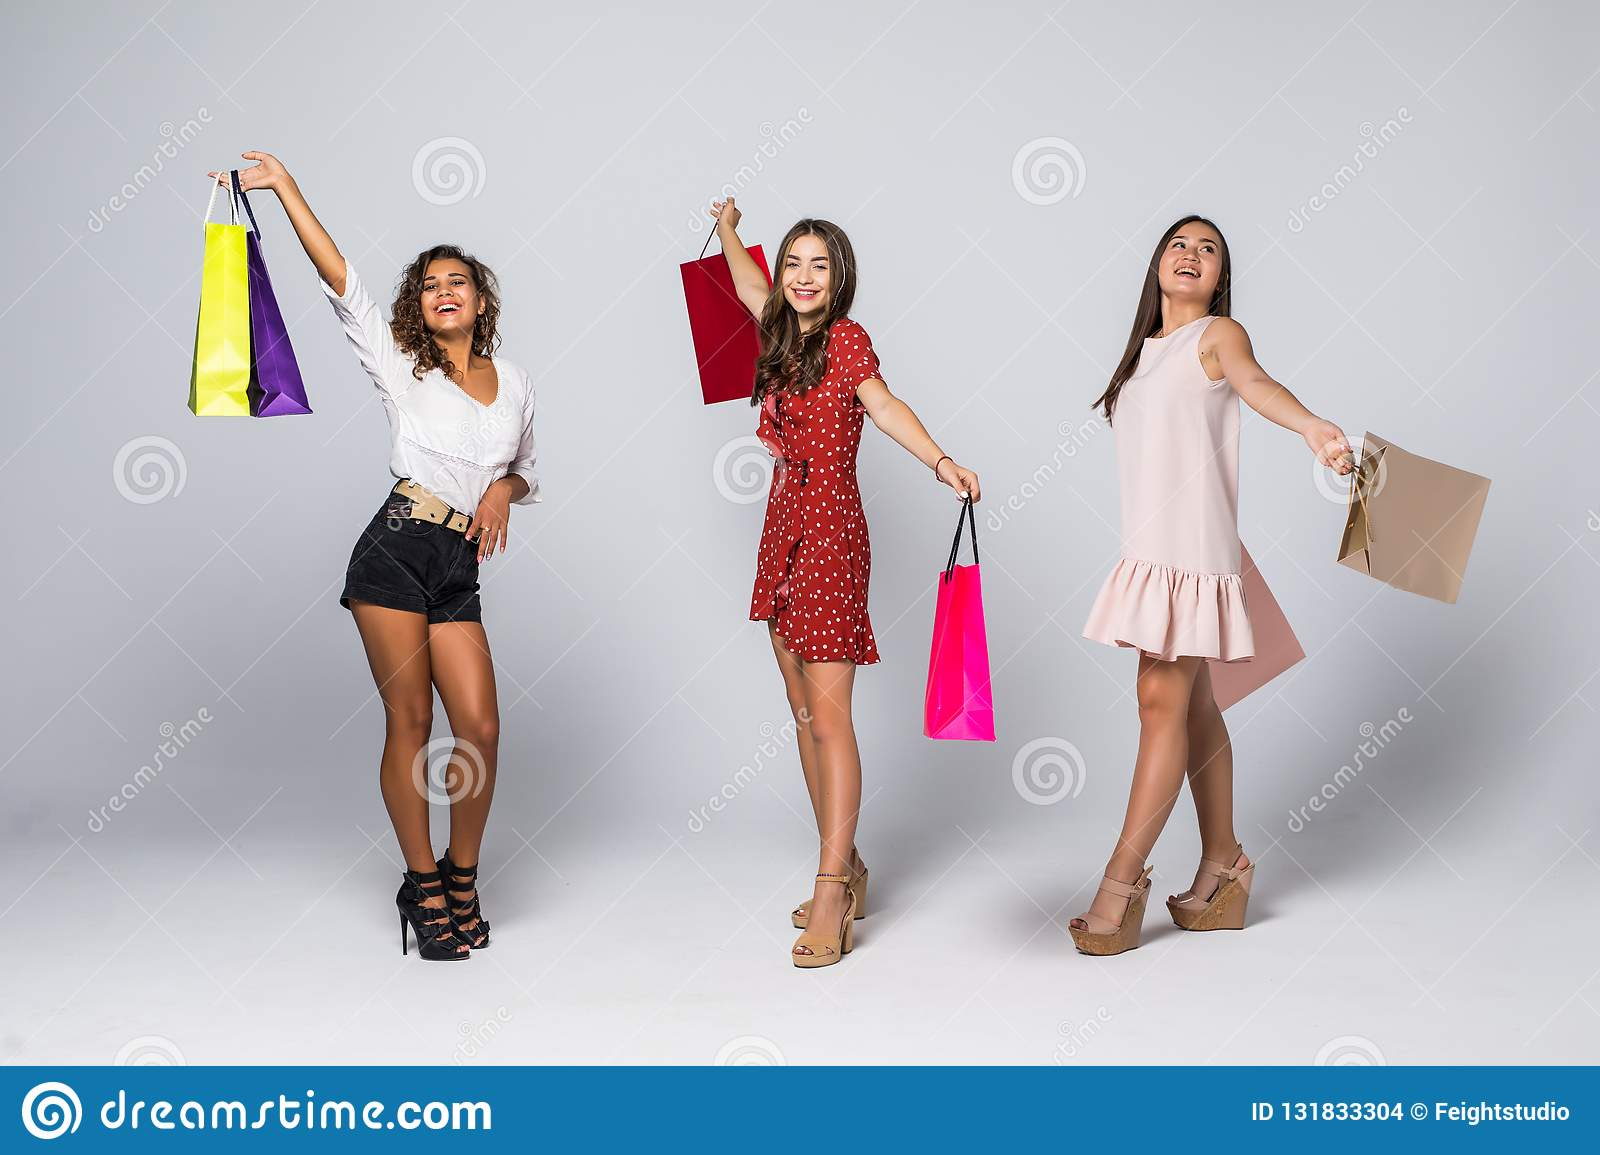 Black friday concept. Portrait of cheerful three mixed race women holding colorful bags in raised hands enjoying seasonal sales